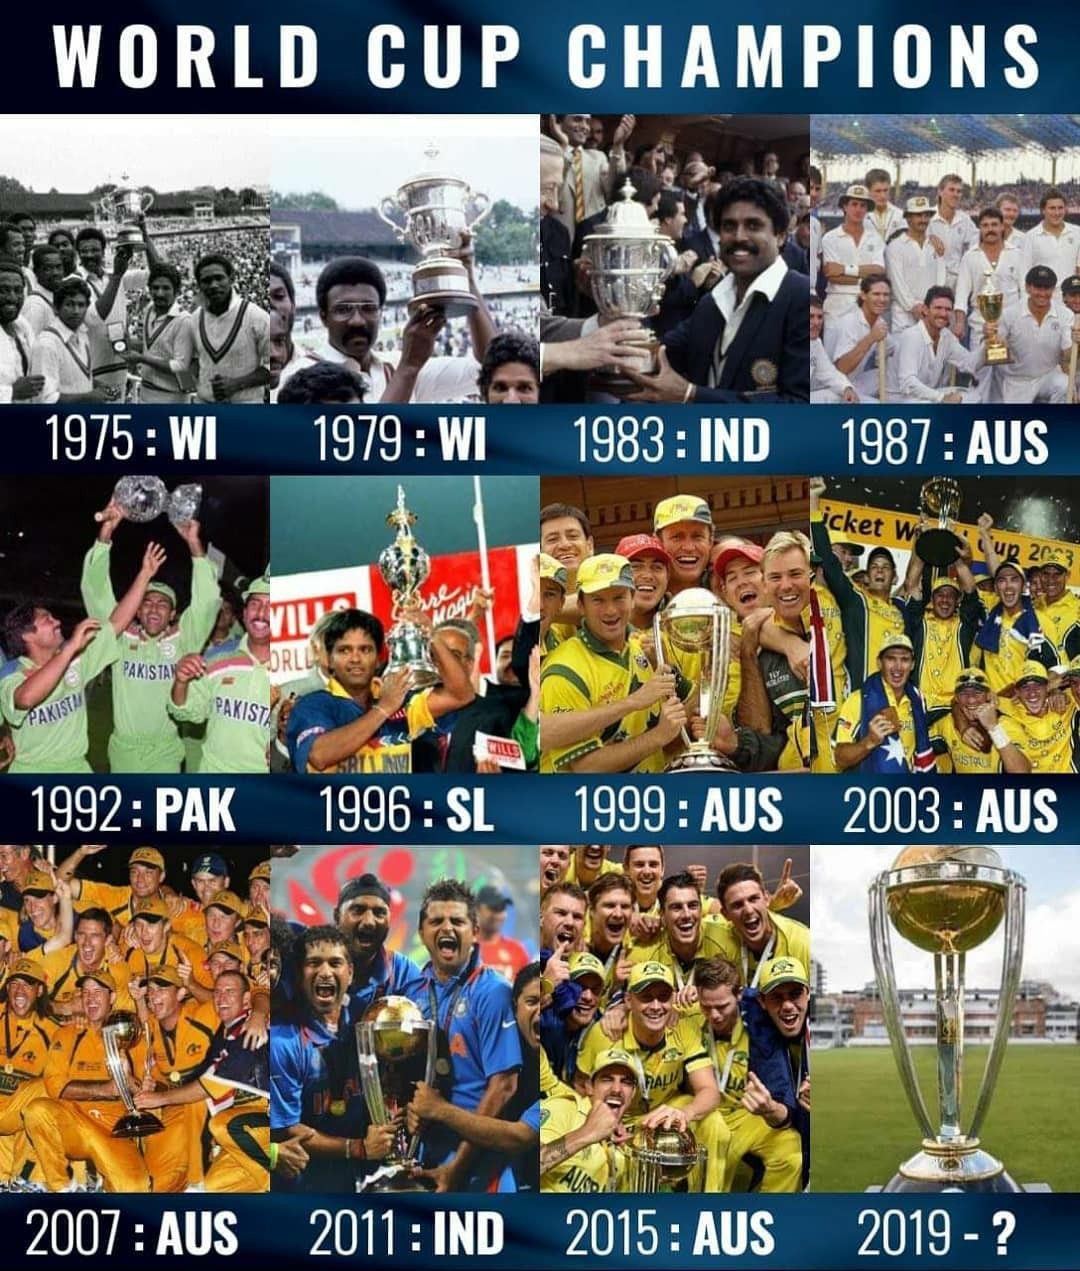 Pin By Alina On Cricket Addiction Cricket World Cup World Cup Cricket